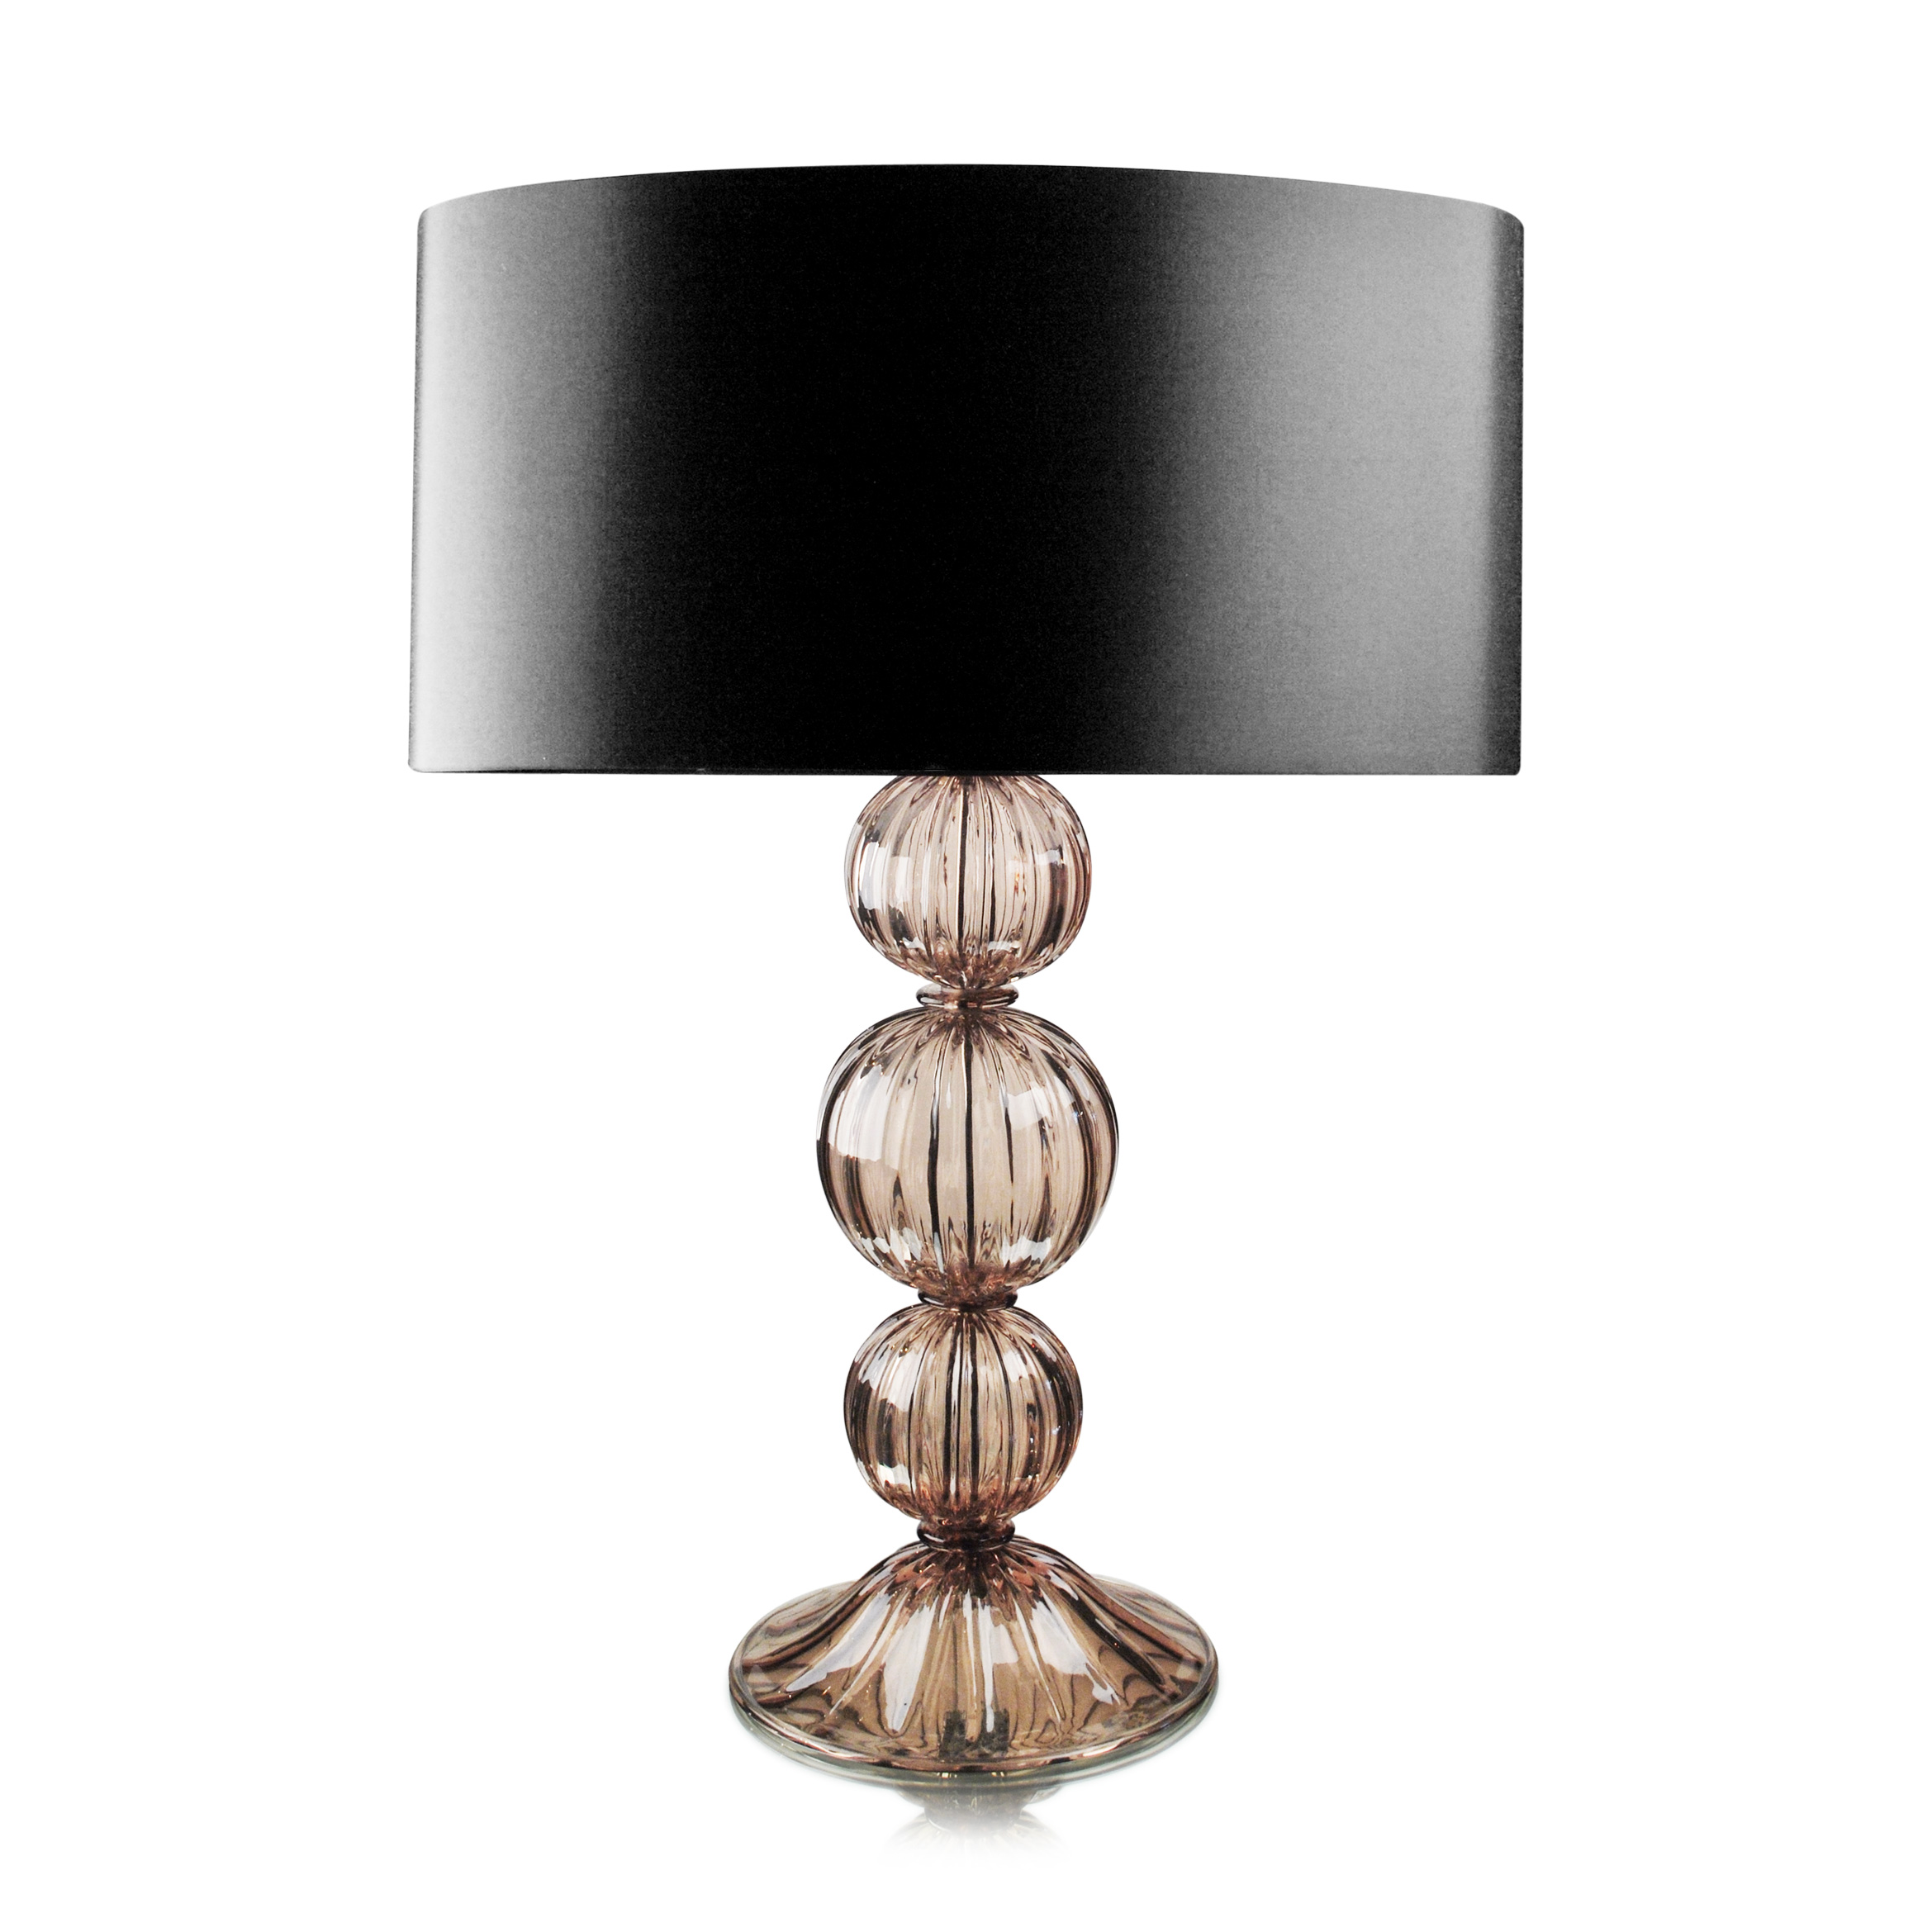 free table product garden shipping home lamp metal duara today overstock uttermost